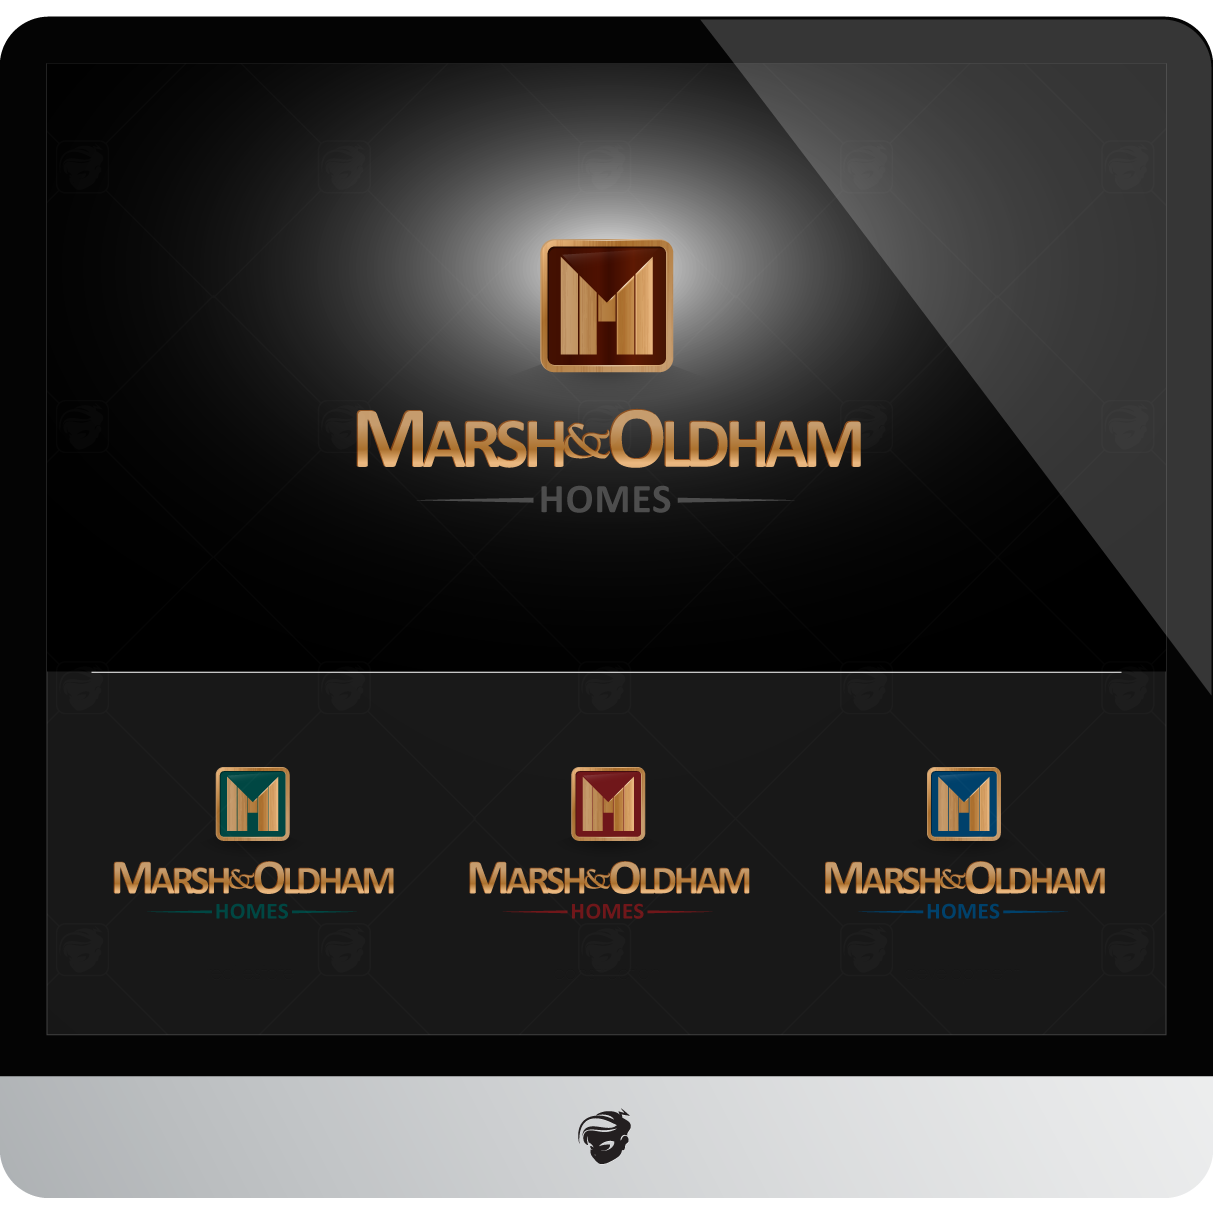 Logo Design by zesthar - Entry No. 54 in the Logo Design Contest Artistic Logo Design for Marsh & Oldham Homes.